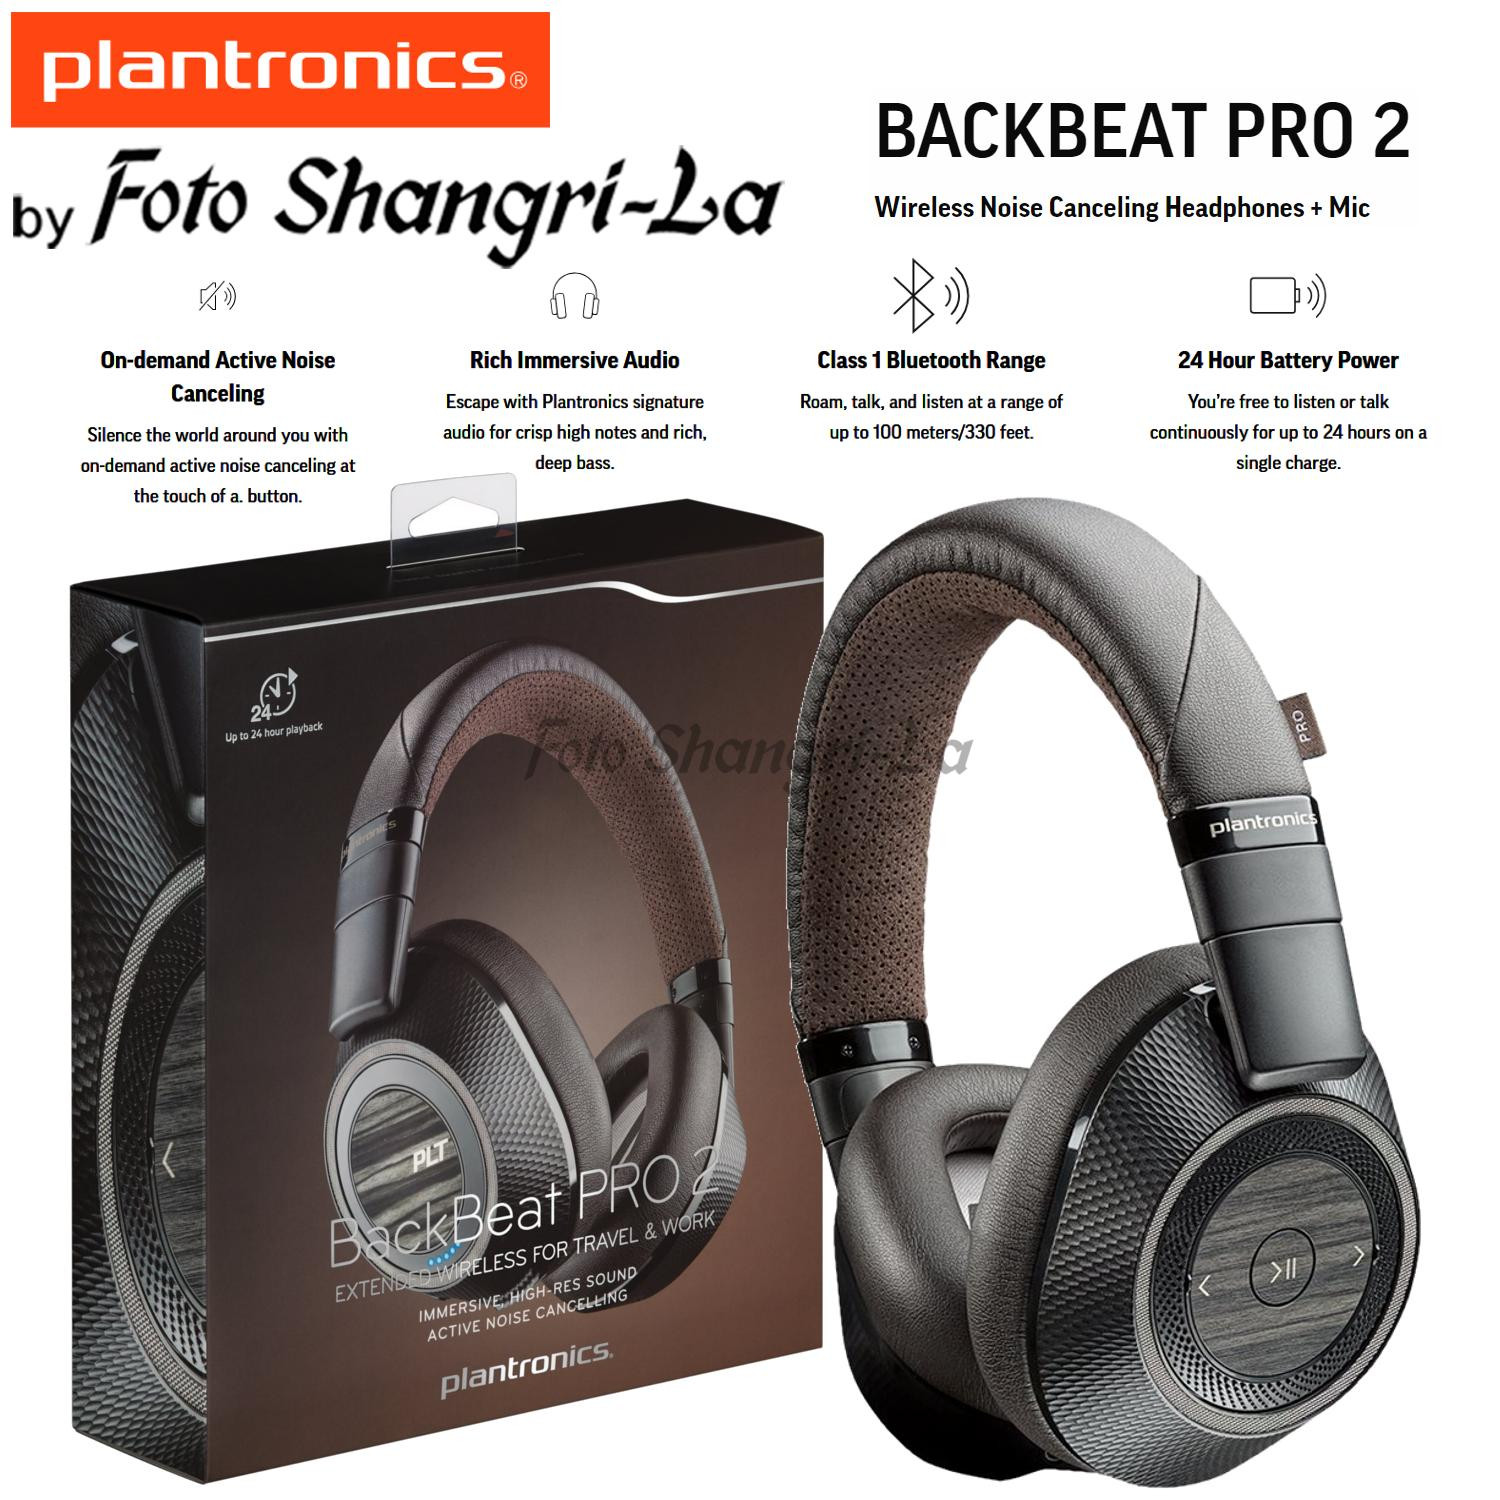 1717a8d0a21 Plantronics BACKBEAT PRO 2 Wireless Active Noise Canceling Over-Ear  Headphones. ‹ ›